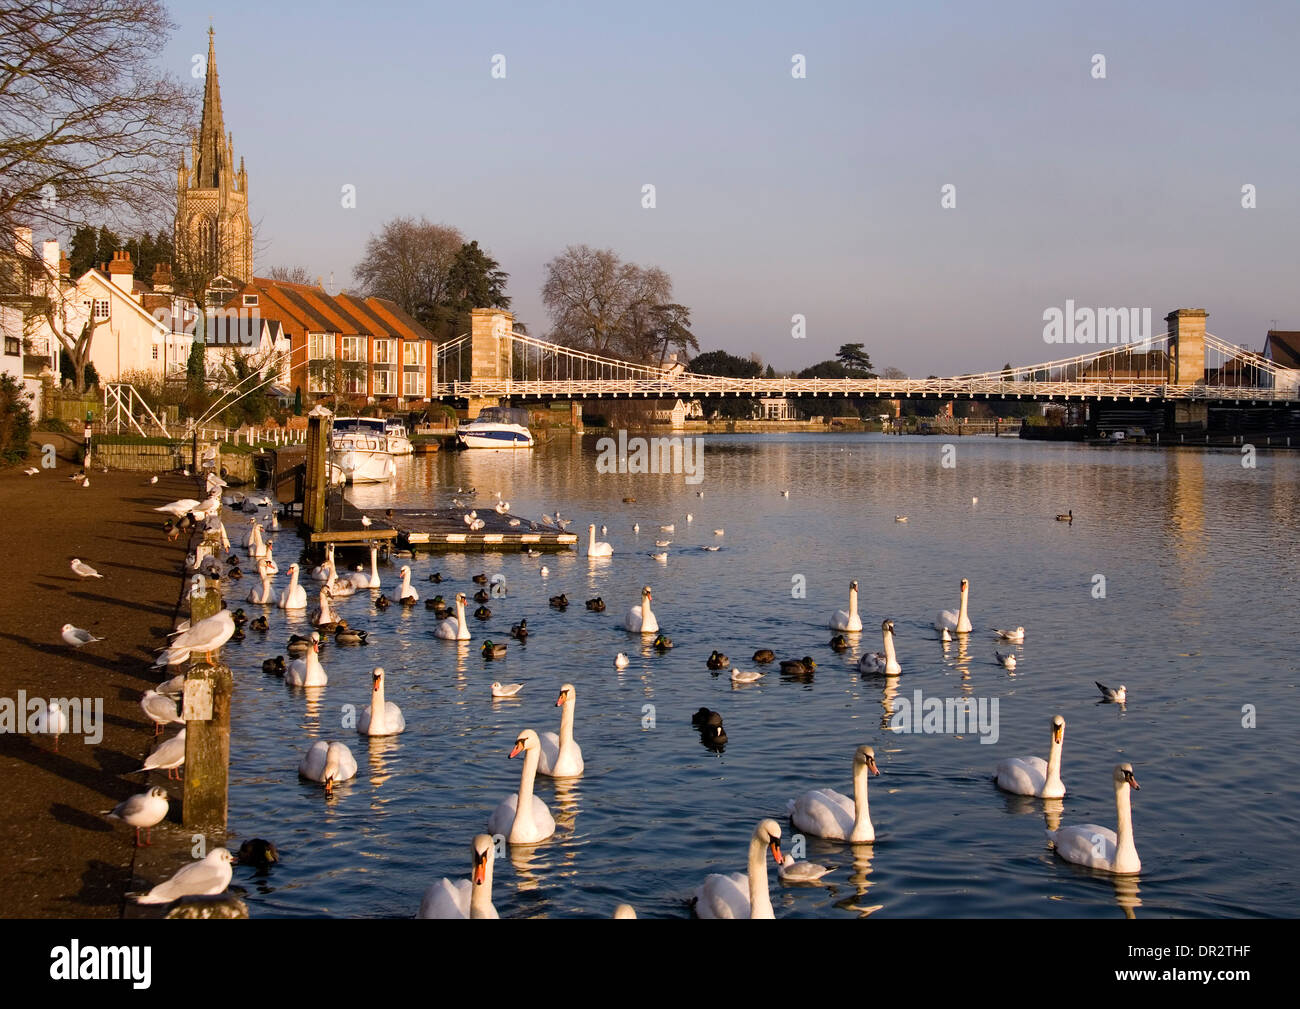 Bucks - Marlow on Thames - suspension bridge - church tower - towpath - swans - mellow sunlight - late afternoon - Stock Image